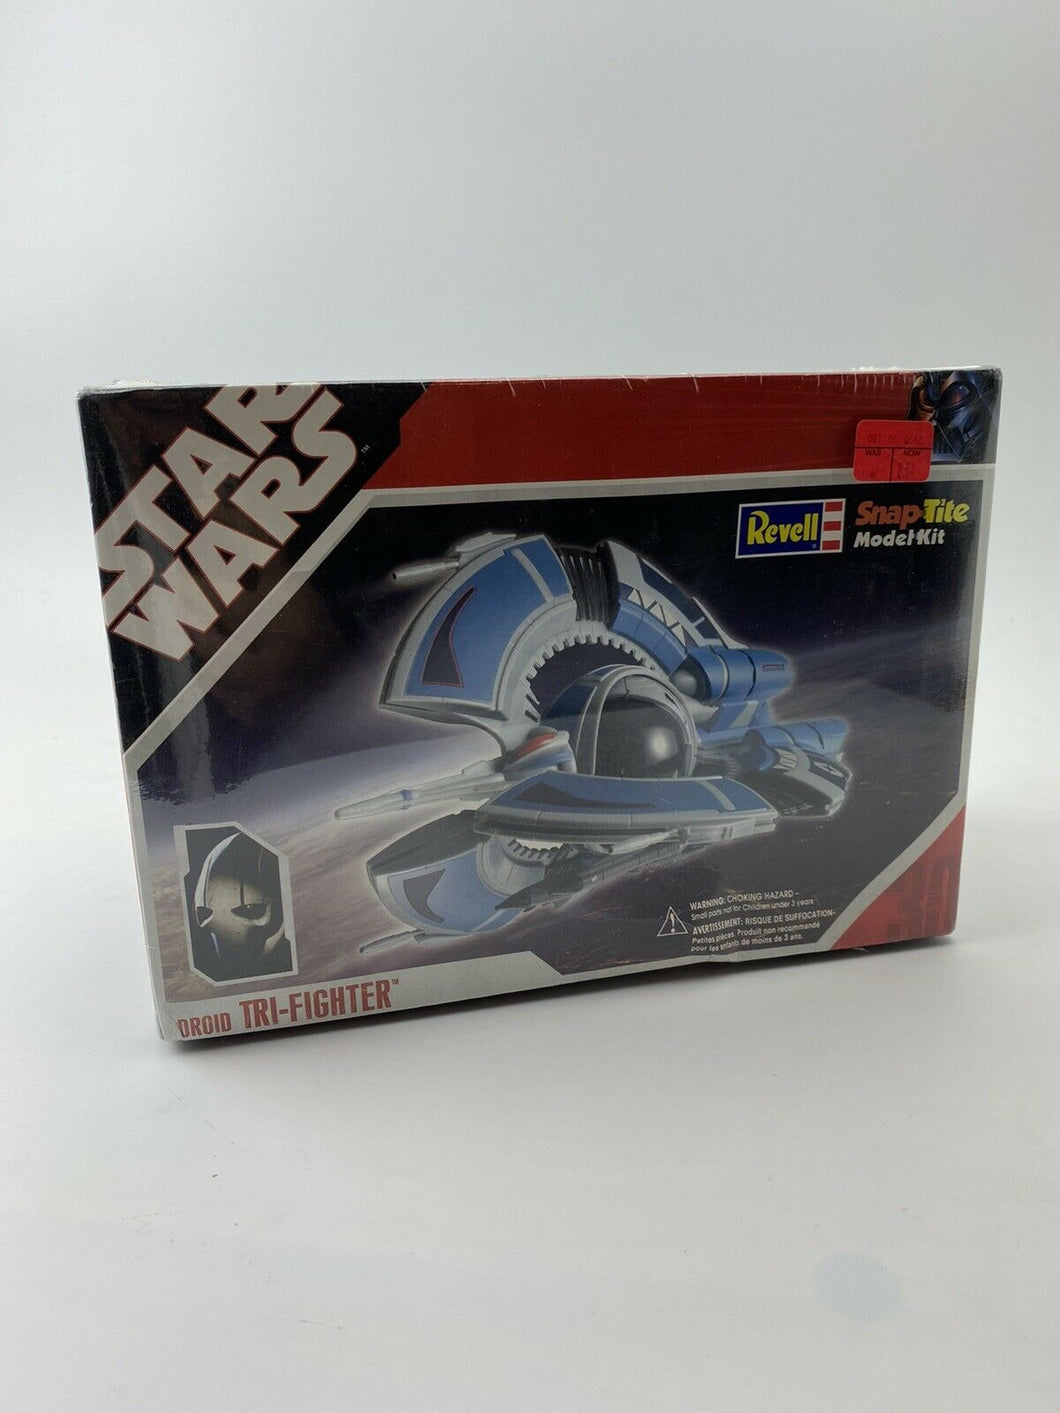 Revell Snaptite Star Wars Droid Tri-Fighter 85185220100 New Factory Sealed